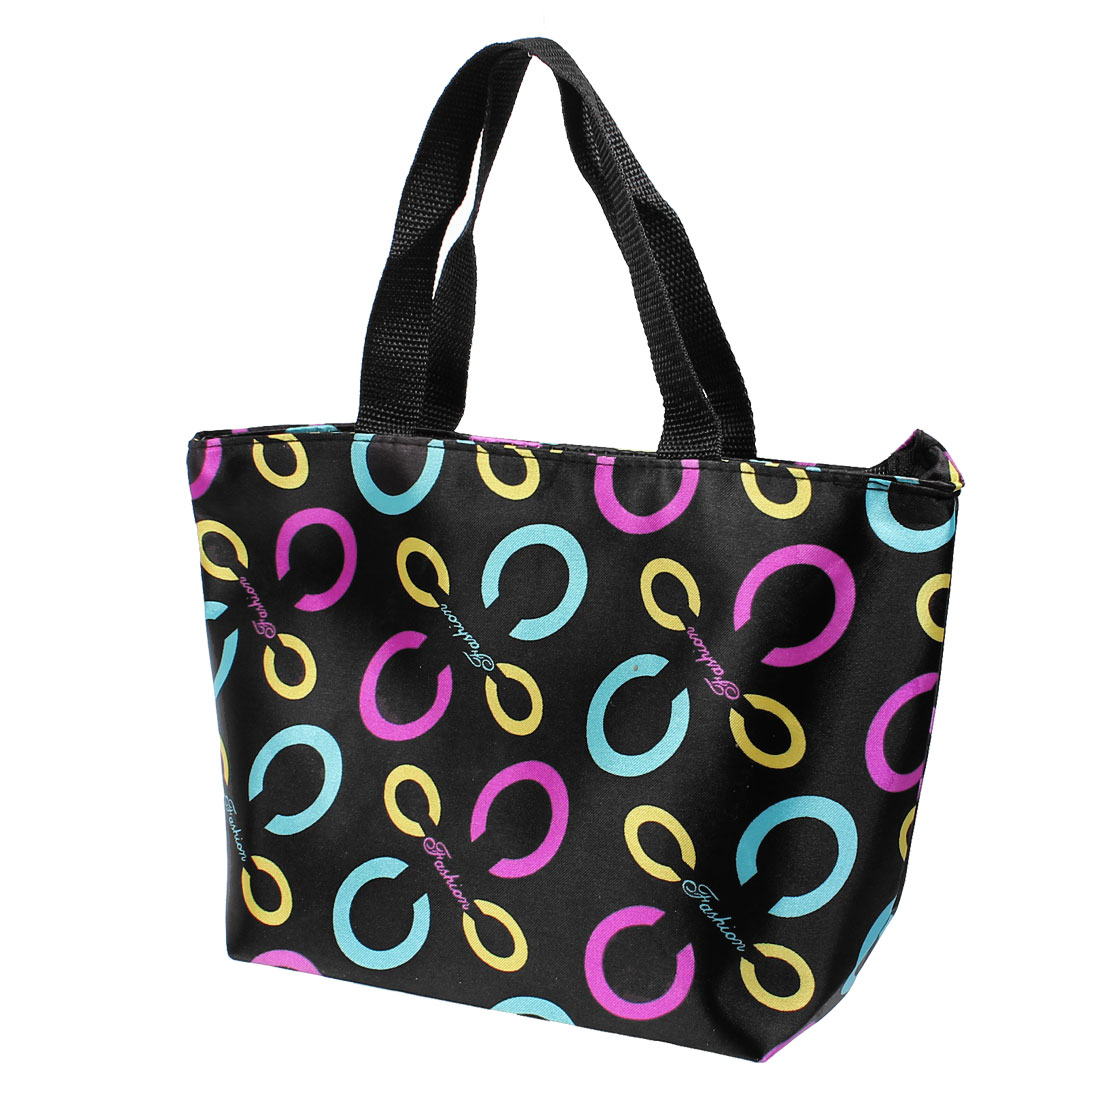 Portable Purple Blue C Printed Zippered Shaopping Bag Handbag Black